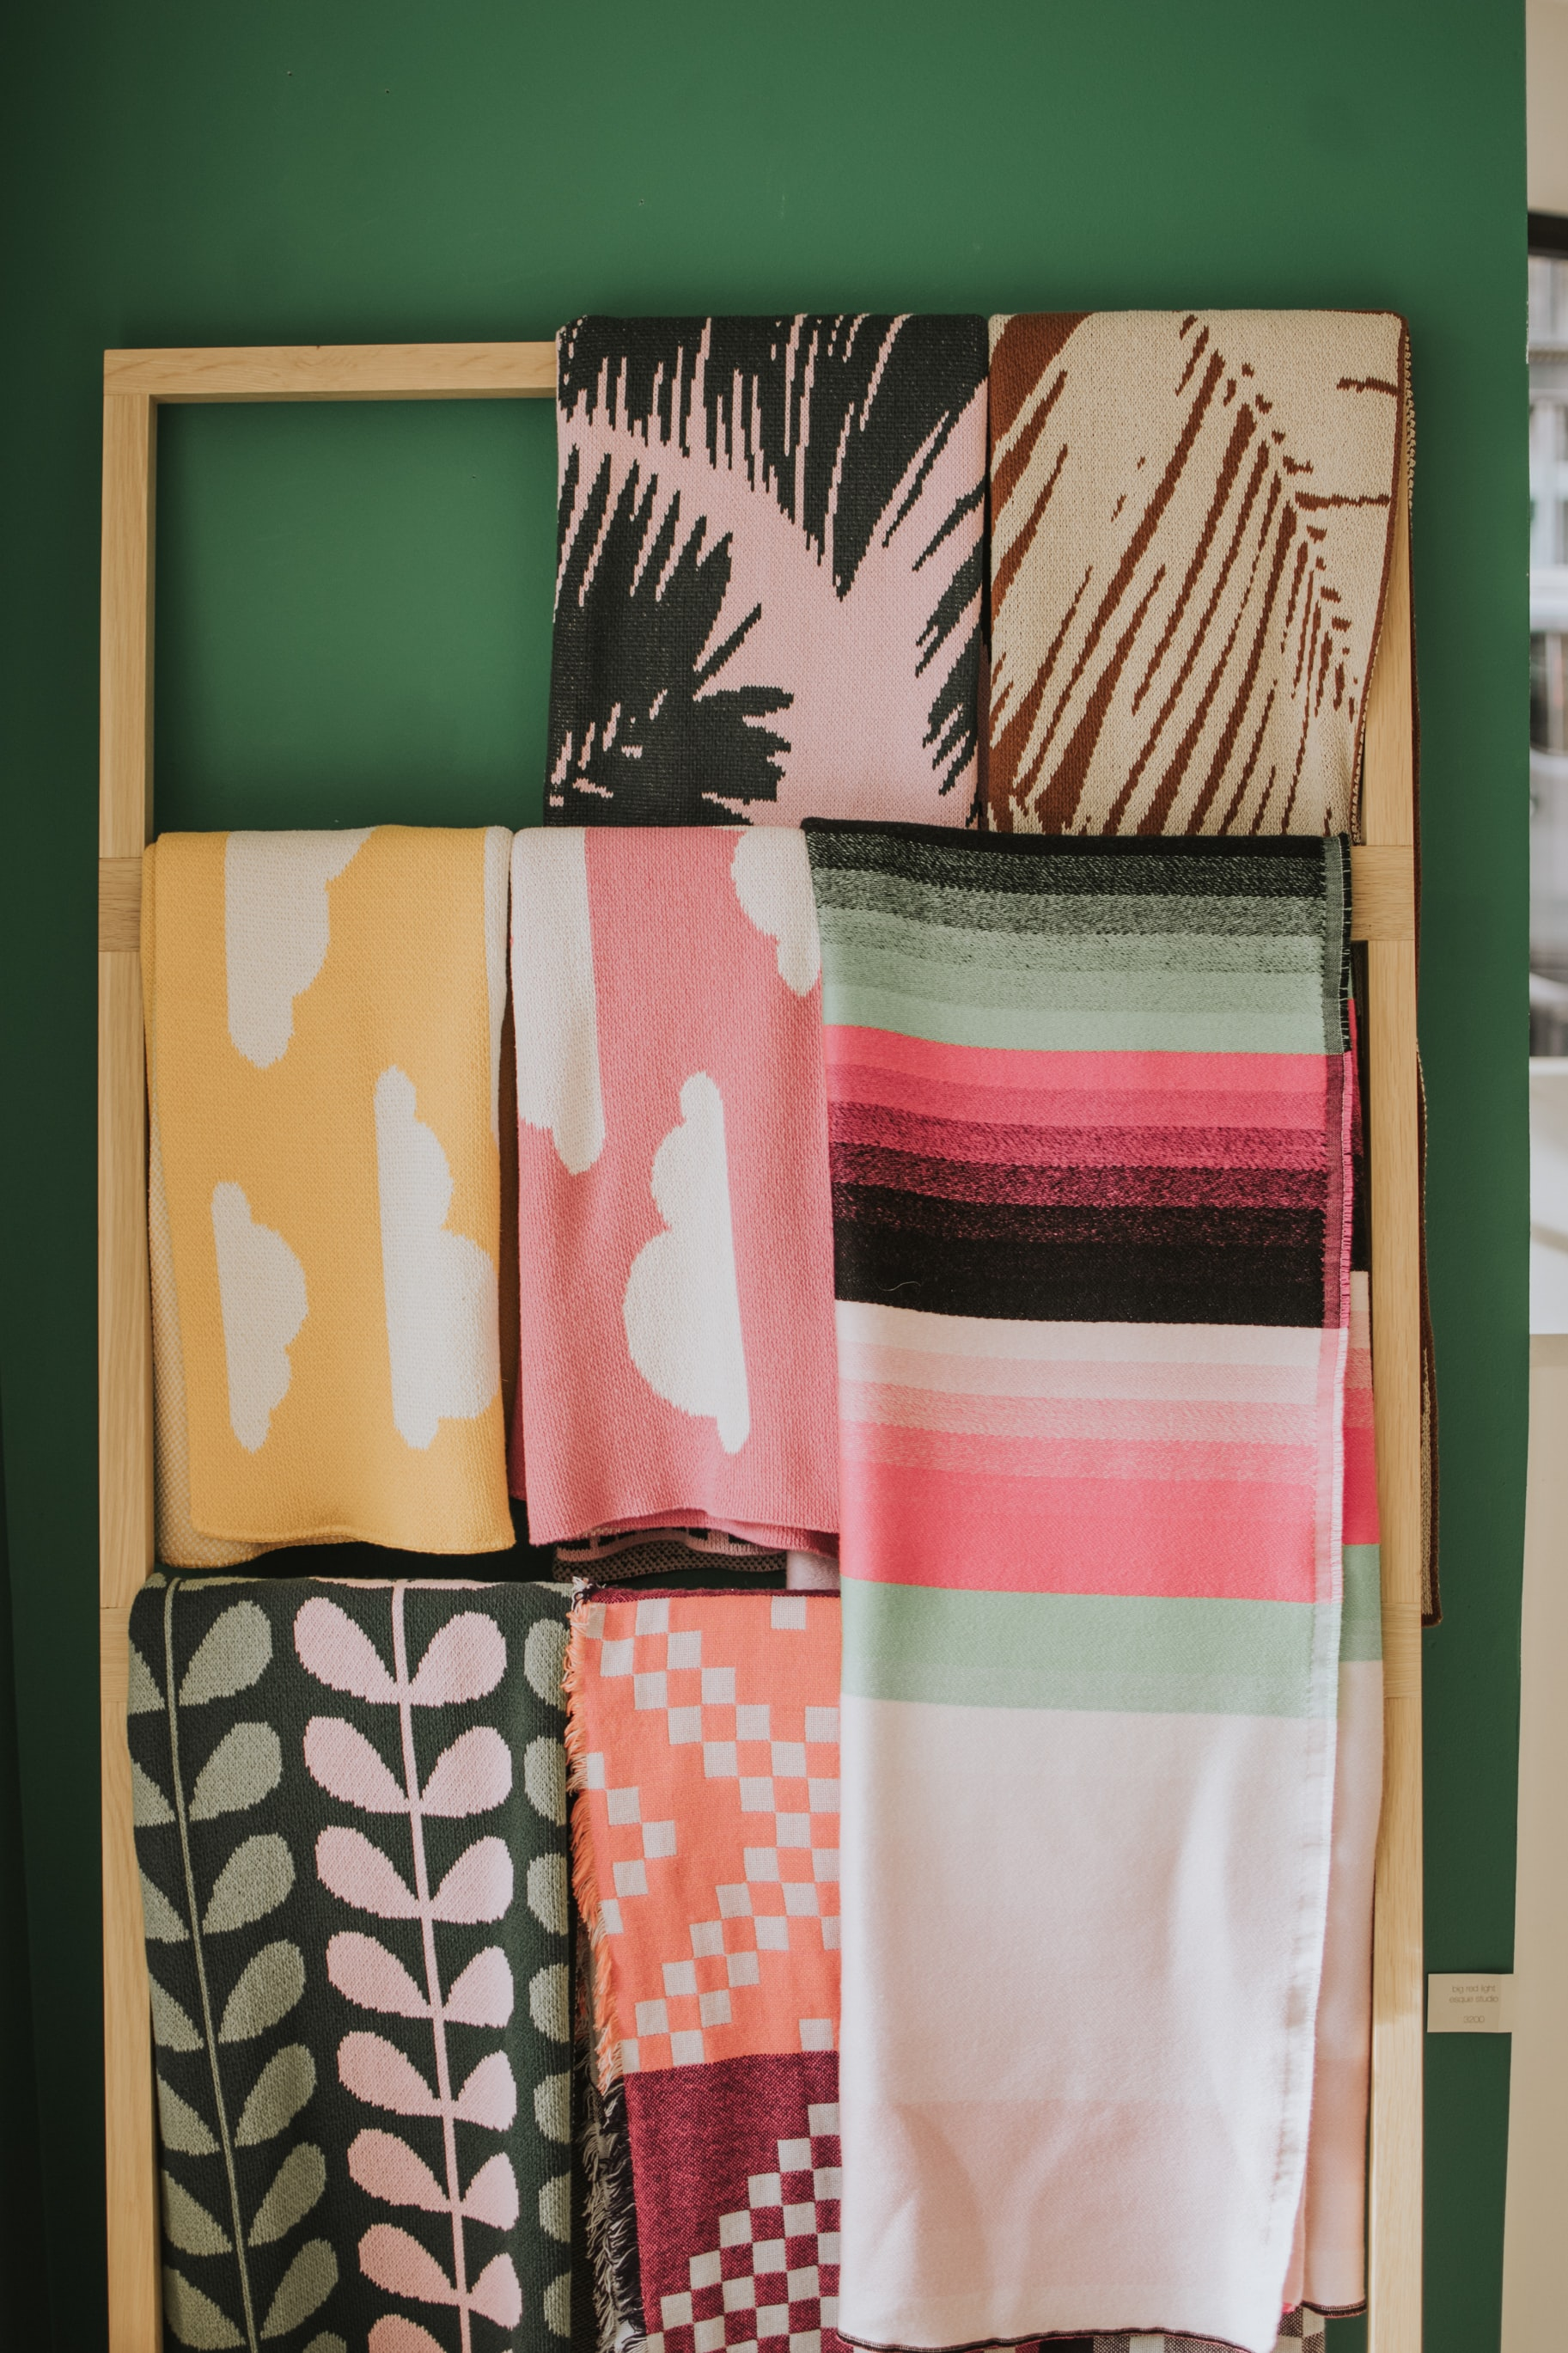 assorted-color textiles hanged on brown valet